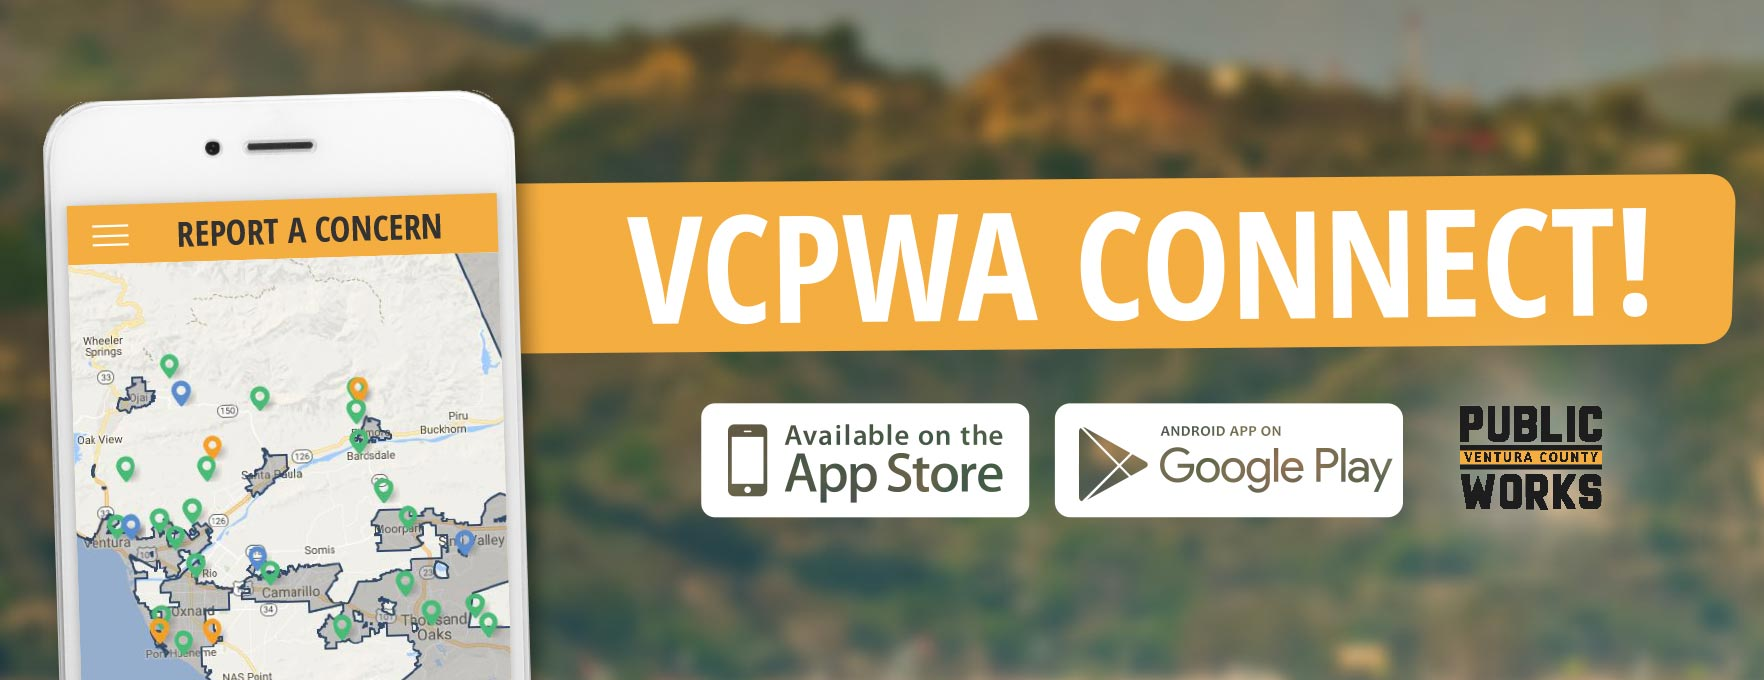 VCPWA-The-Works-connect-header